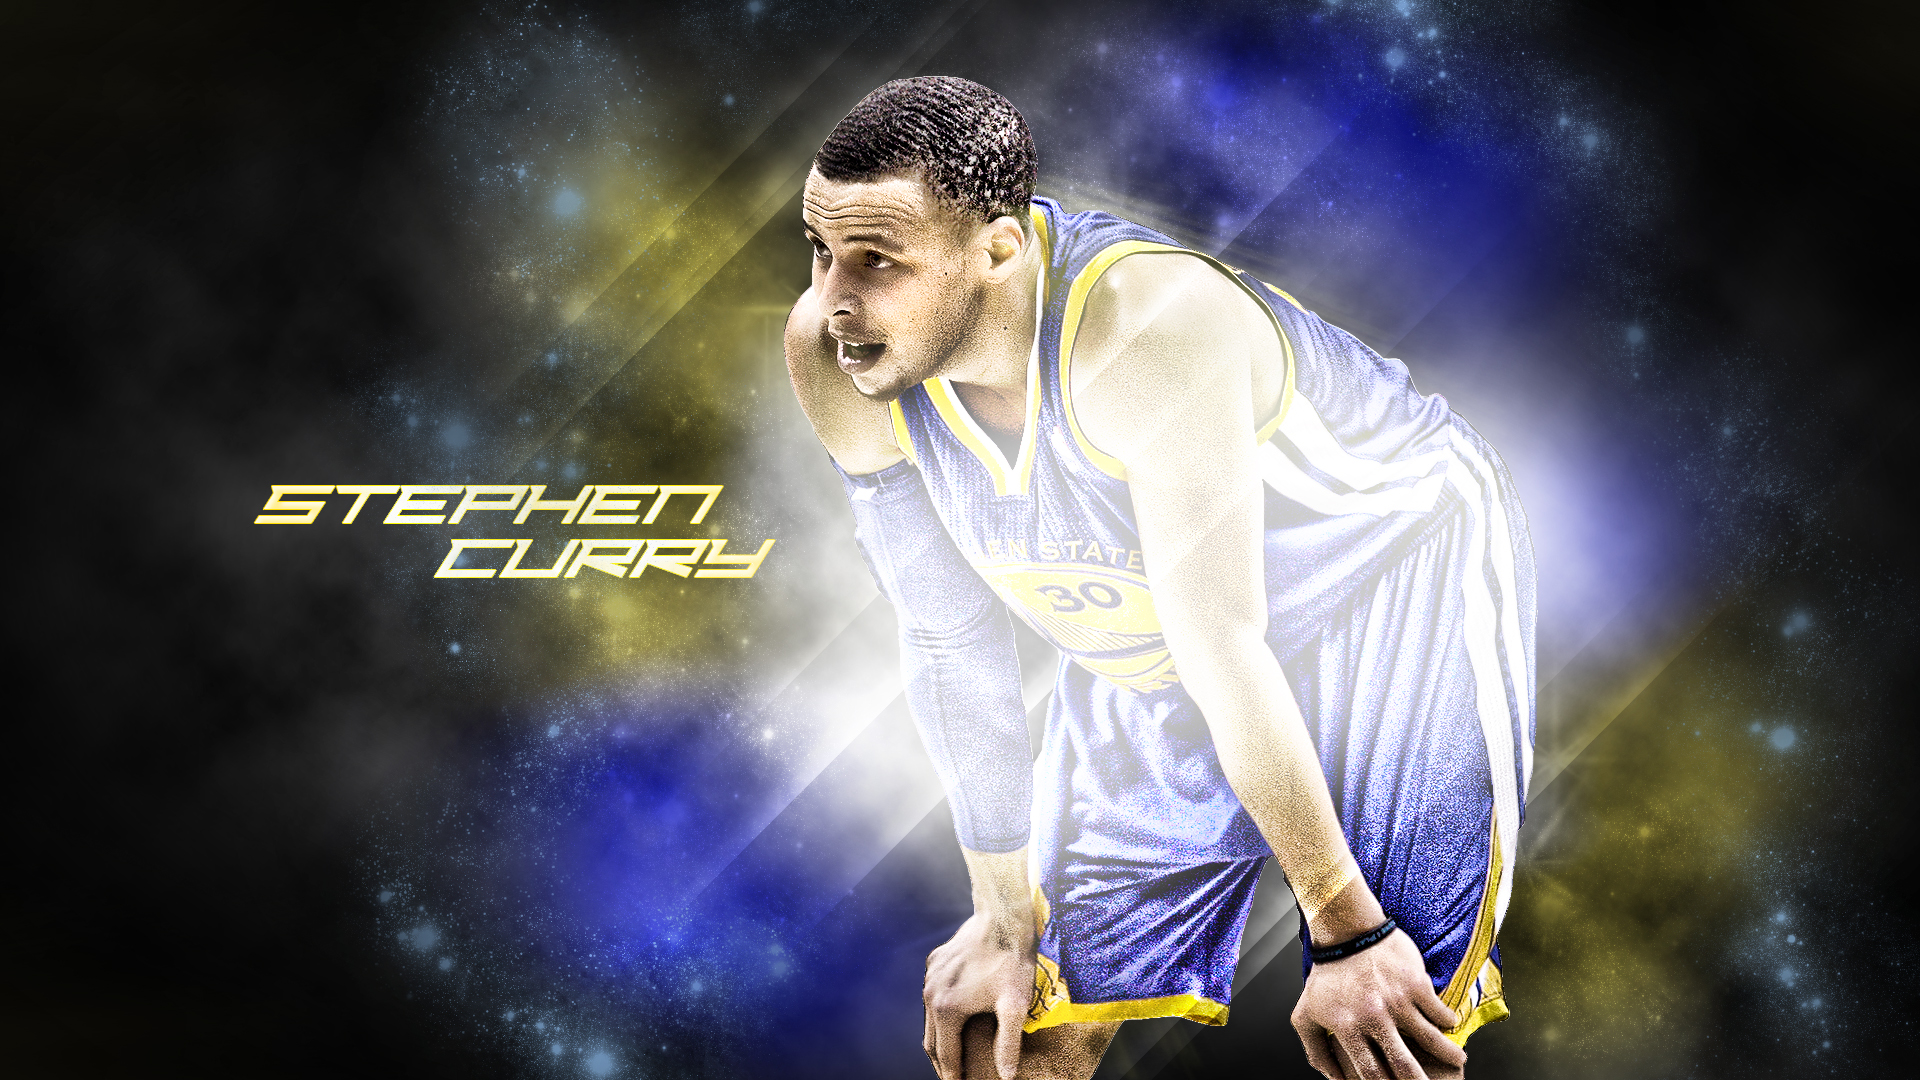 Stephen Curry Wallpaper Warriors The Art Mad Wallpapers 1920x1080